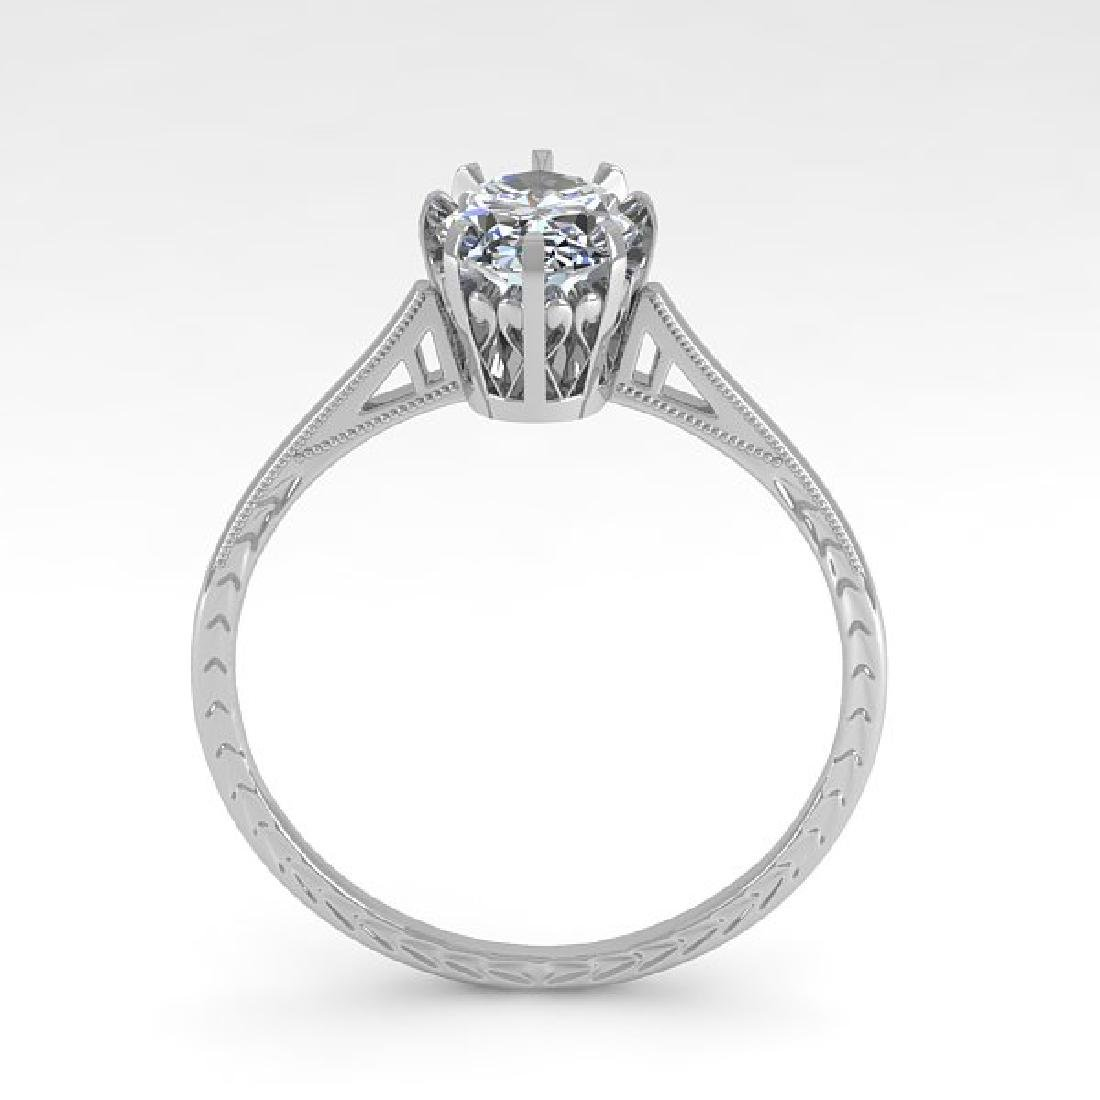 1.0 CTW VS/SI Oval Diamond Solitaire Ring 14K White - 3